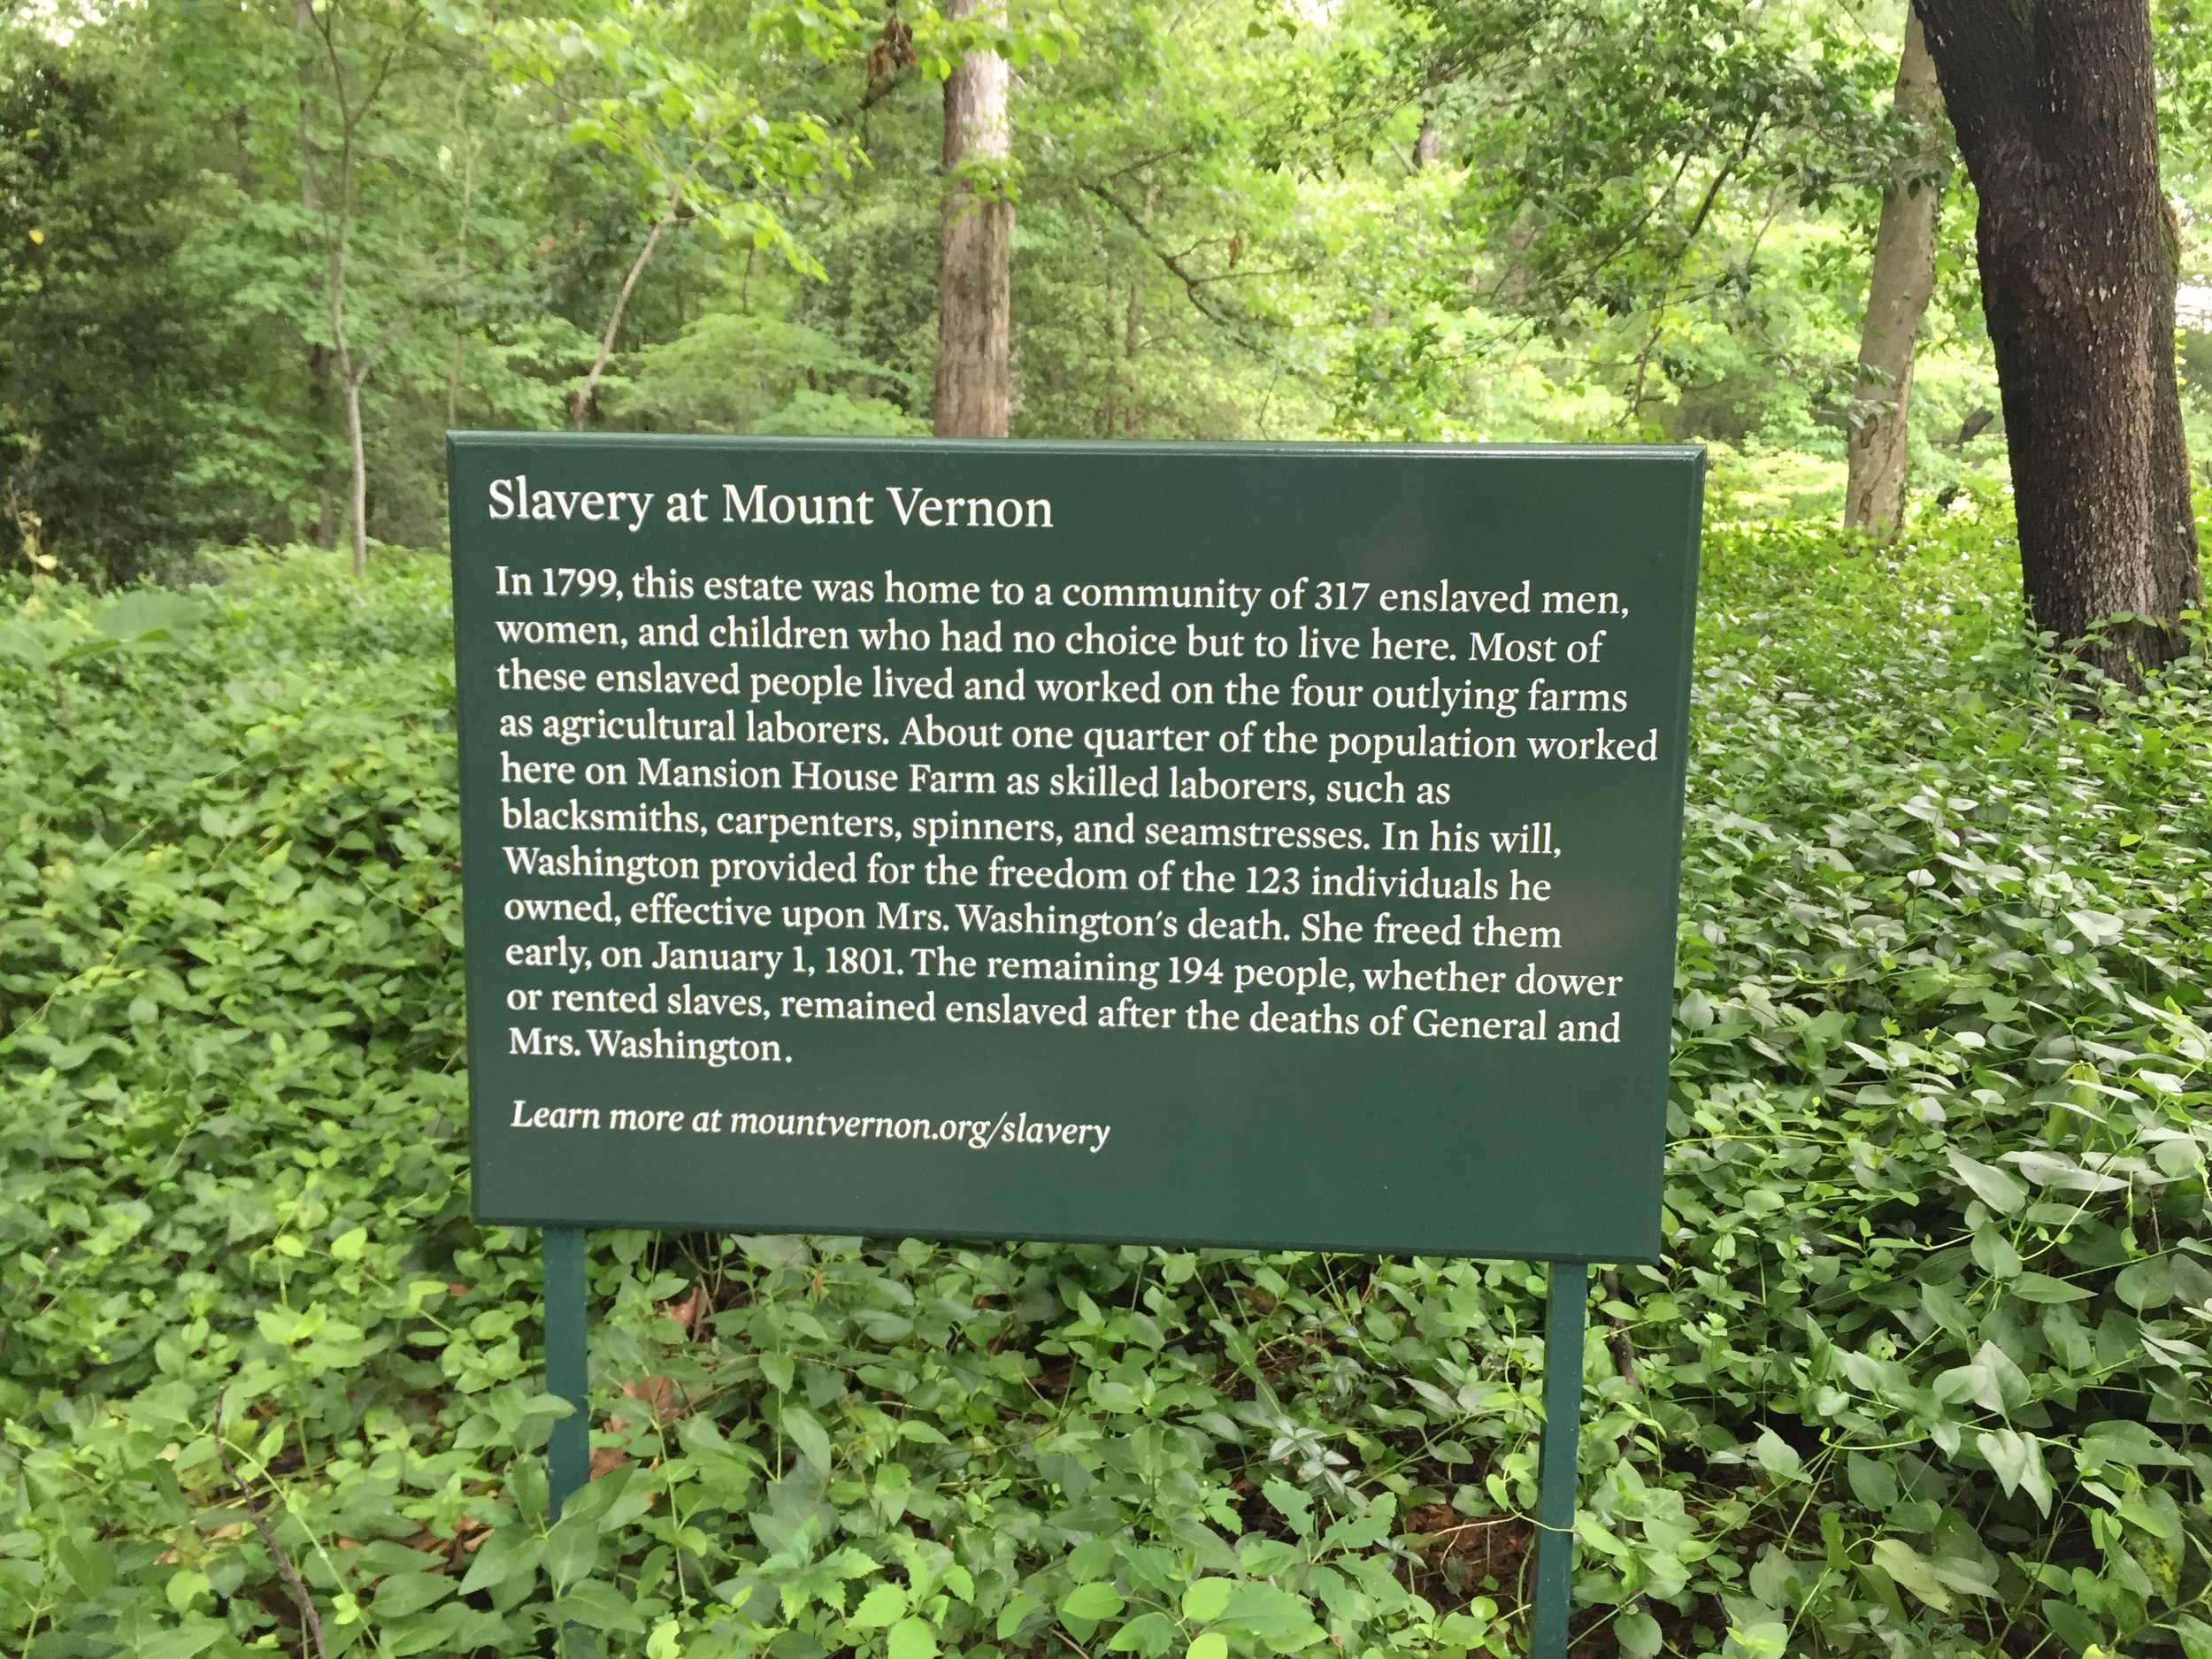 A sign near the Slave Memorial explains the details of Slavery at Mount Vernon.